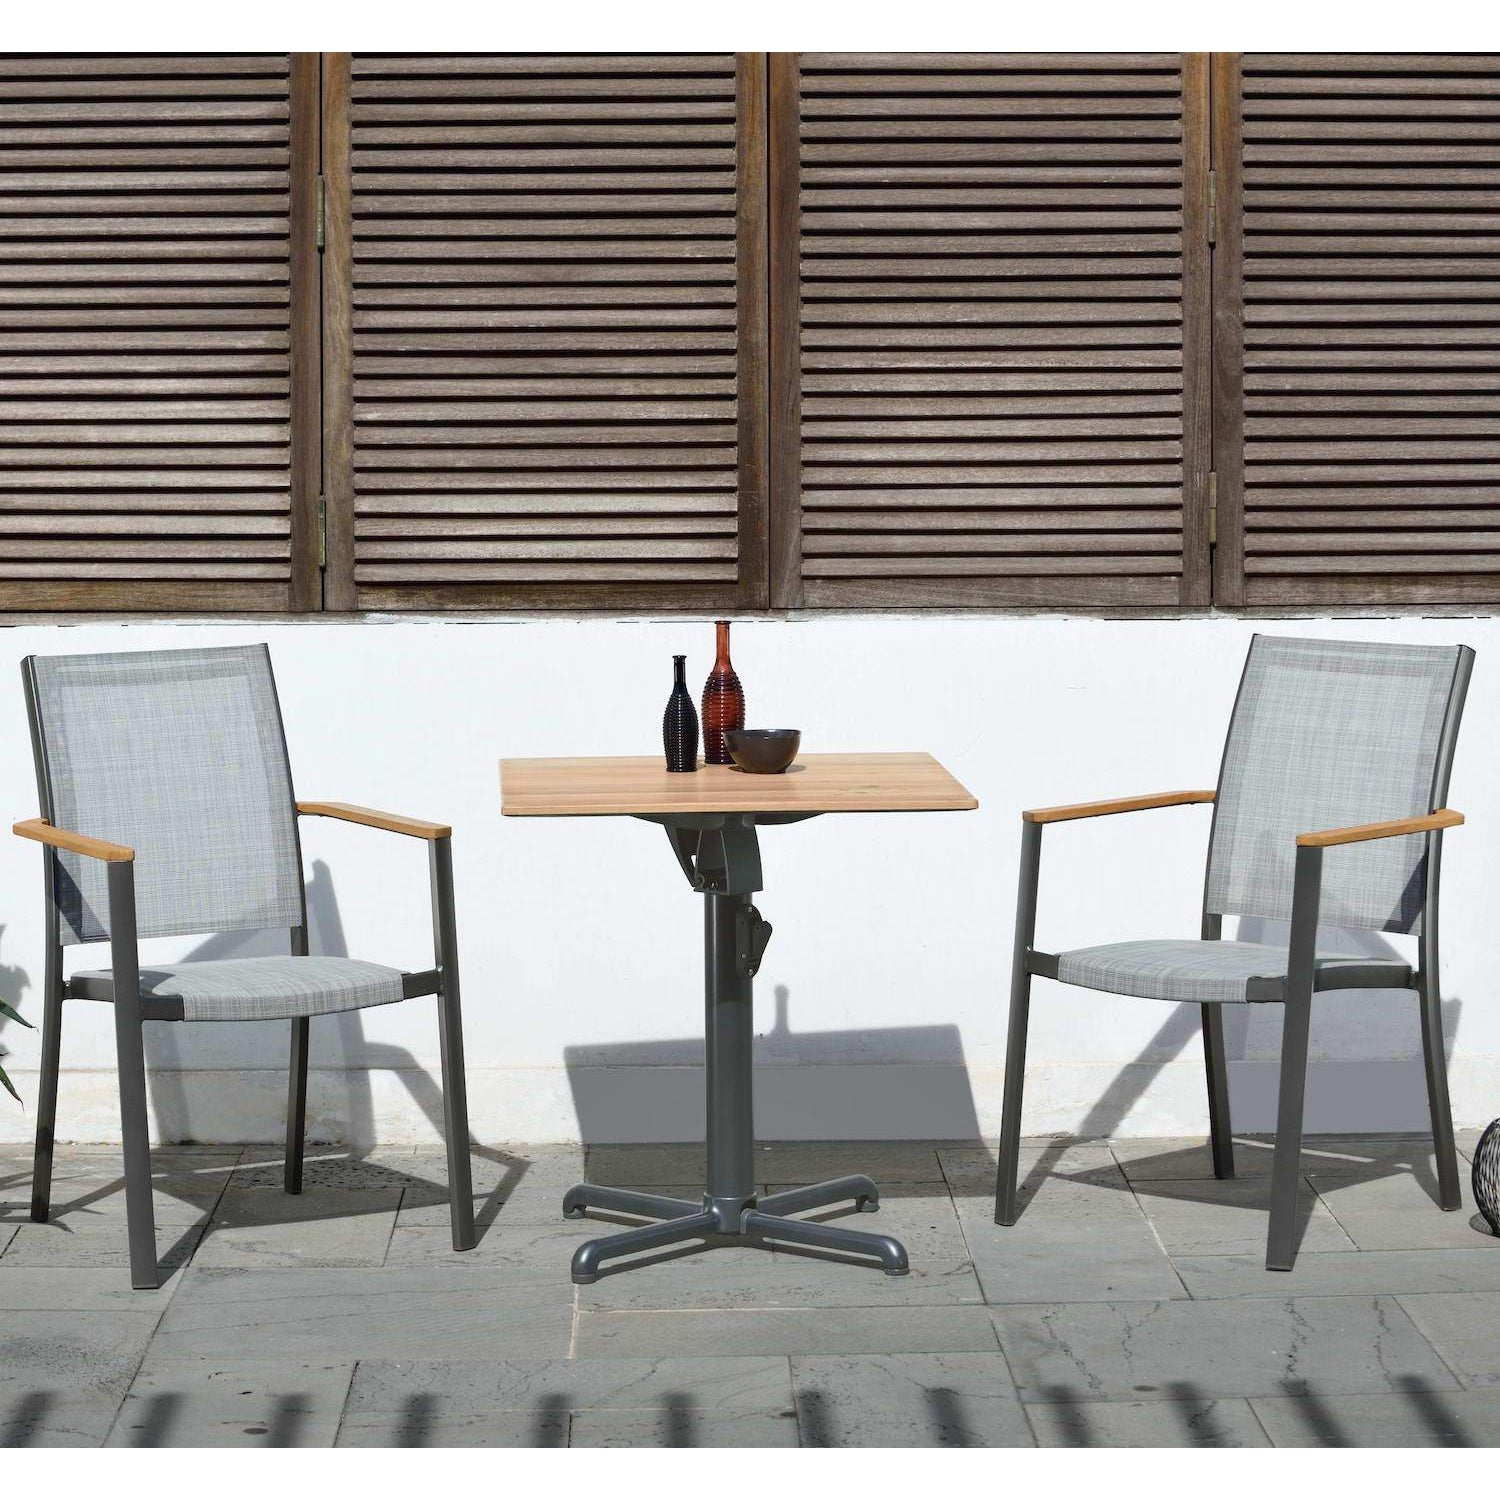 Park Slope 3-Piece Outdoor Bistro Dining Set